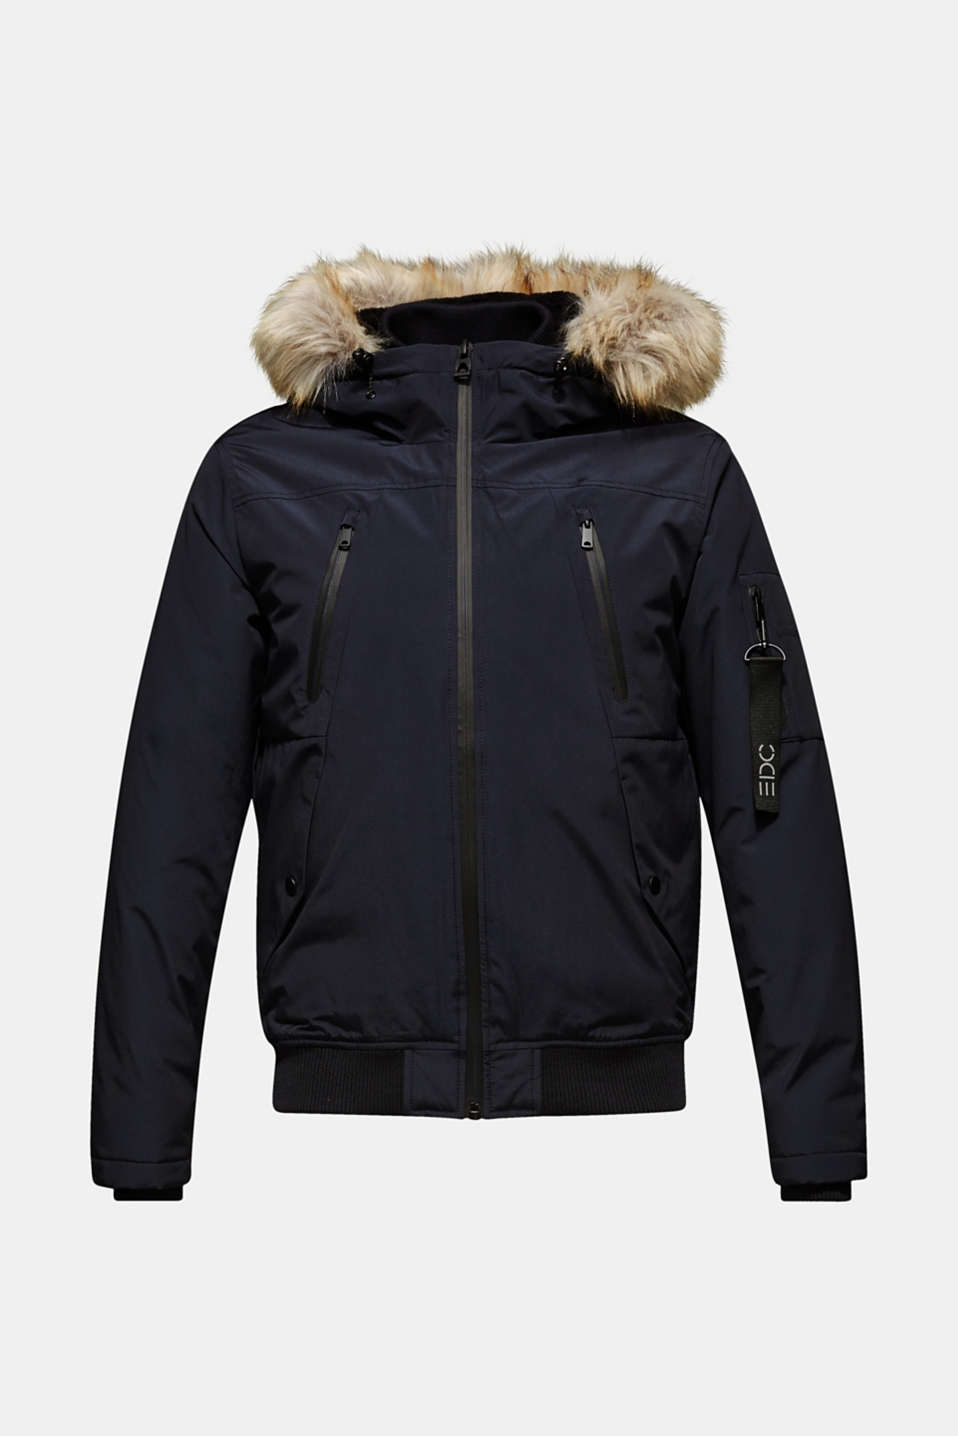 Winter jacket with a faux fur hood, NAVY, detail image number 6